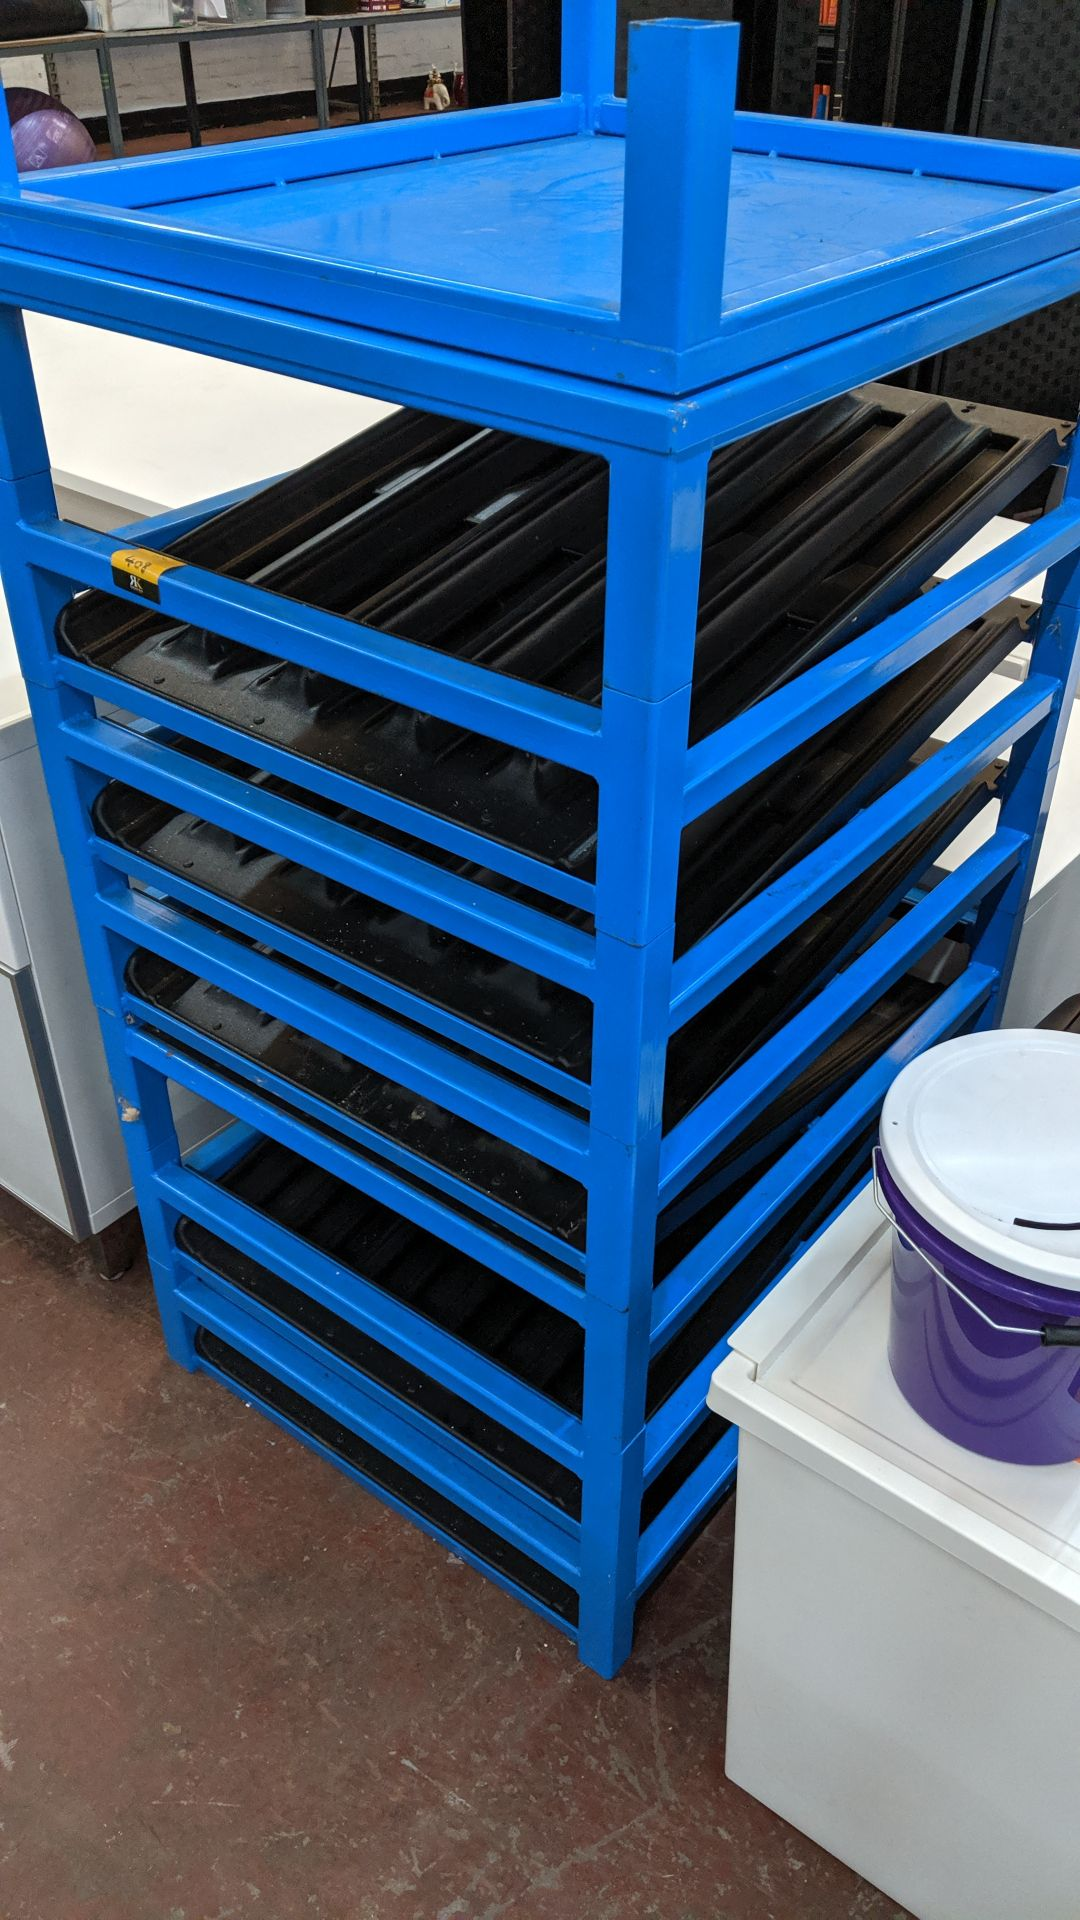 Lot 408 - Blue metal rack understood to have been used for the storage of oxygen cylinders. This is one of a